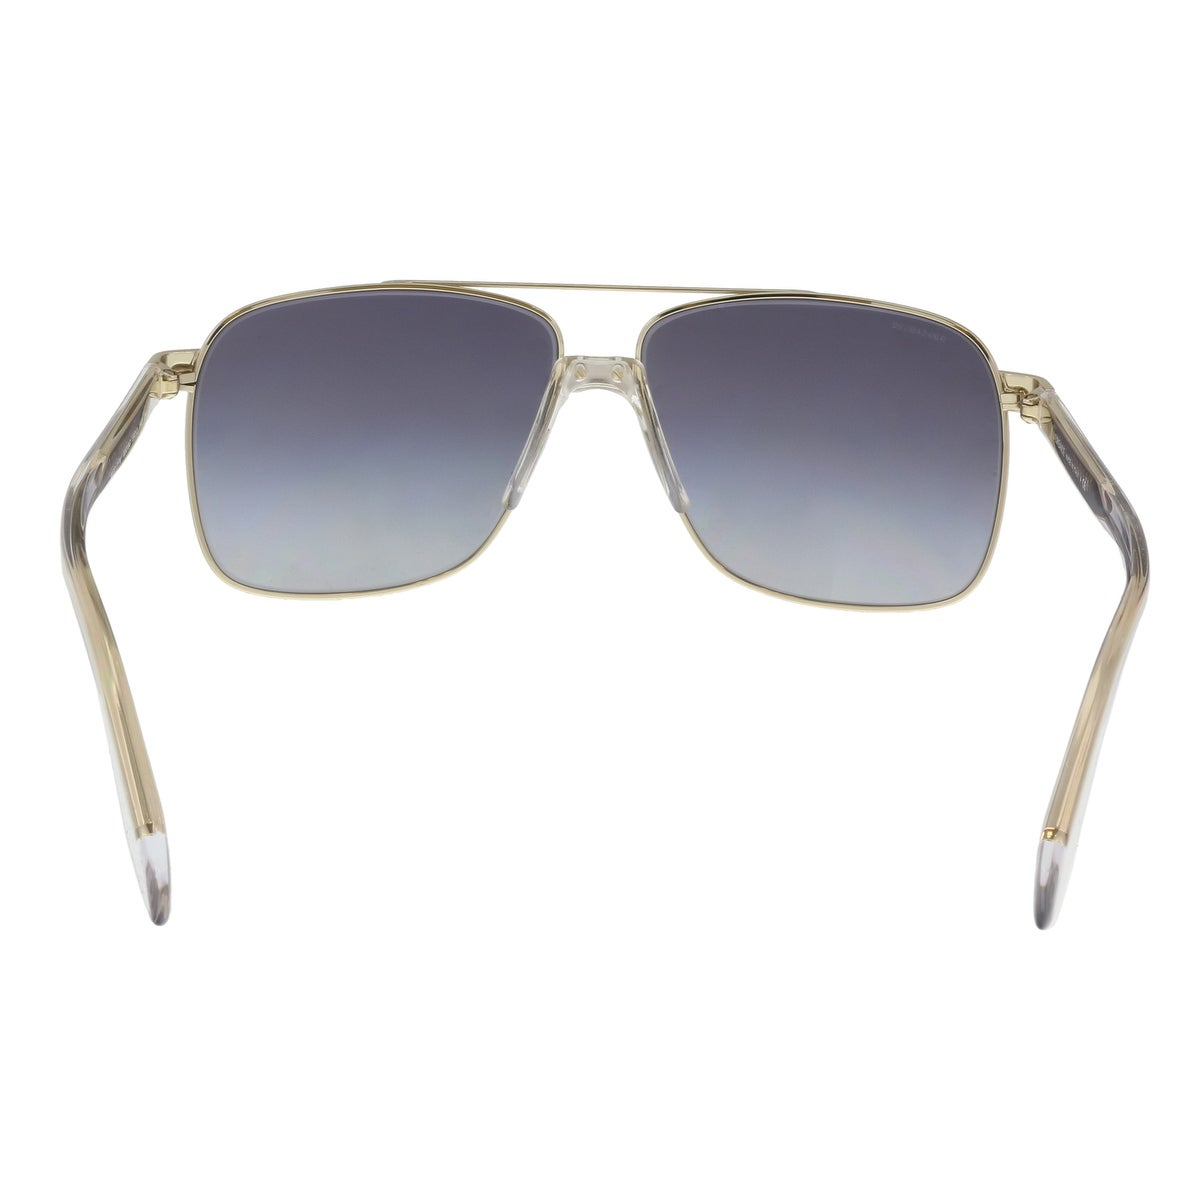 09bc543e1b Shop Versace VE2174 12528G Pale Gold Aviator Sunglasses - 59-12-145 - Free  Shipping Today - Overstock - 21158074